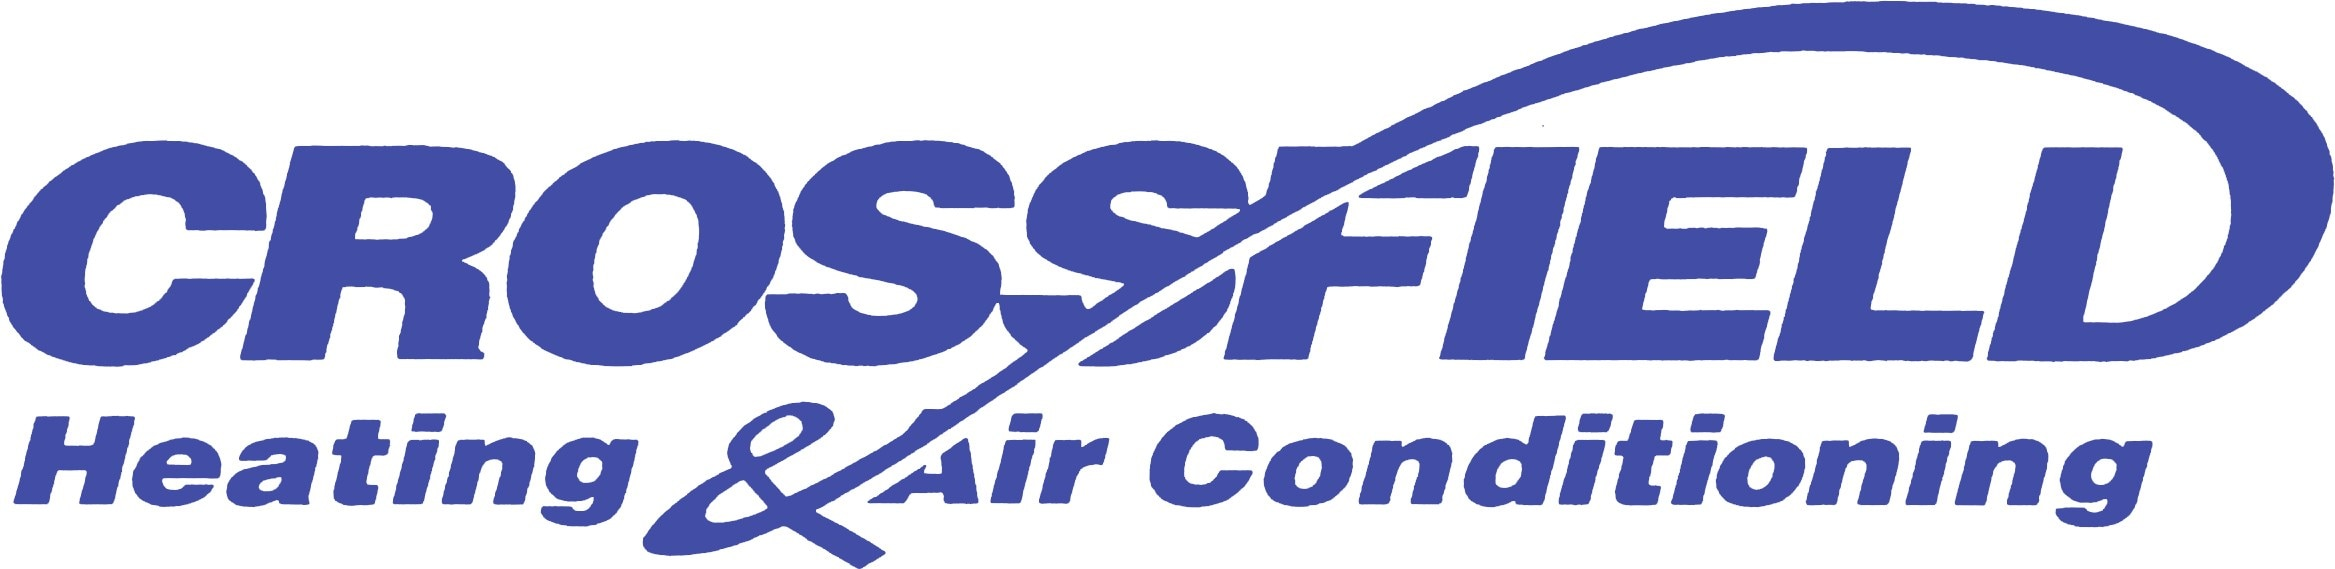 Crossfield Heating & Air Conditioning logo